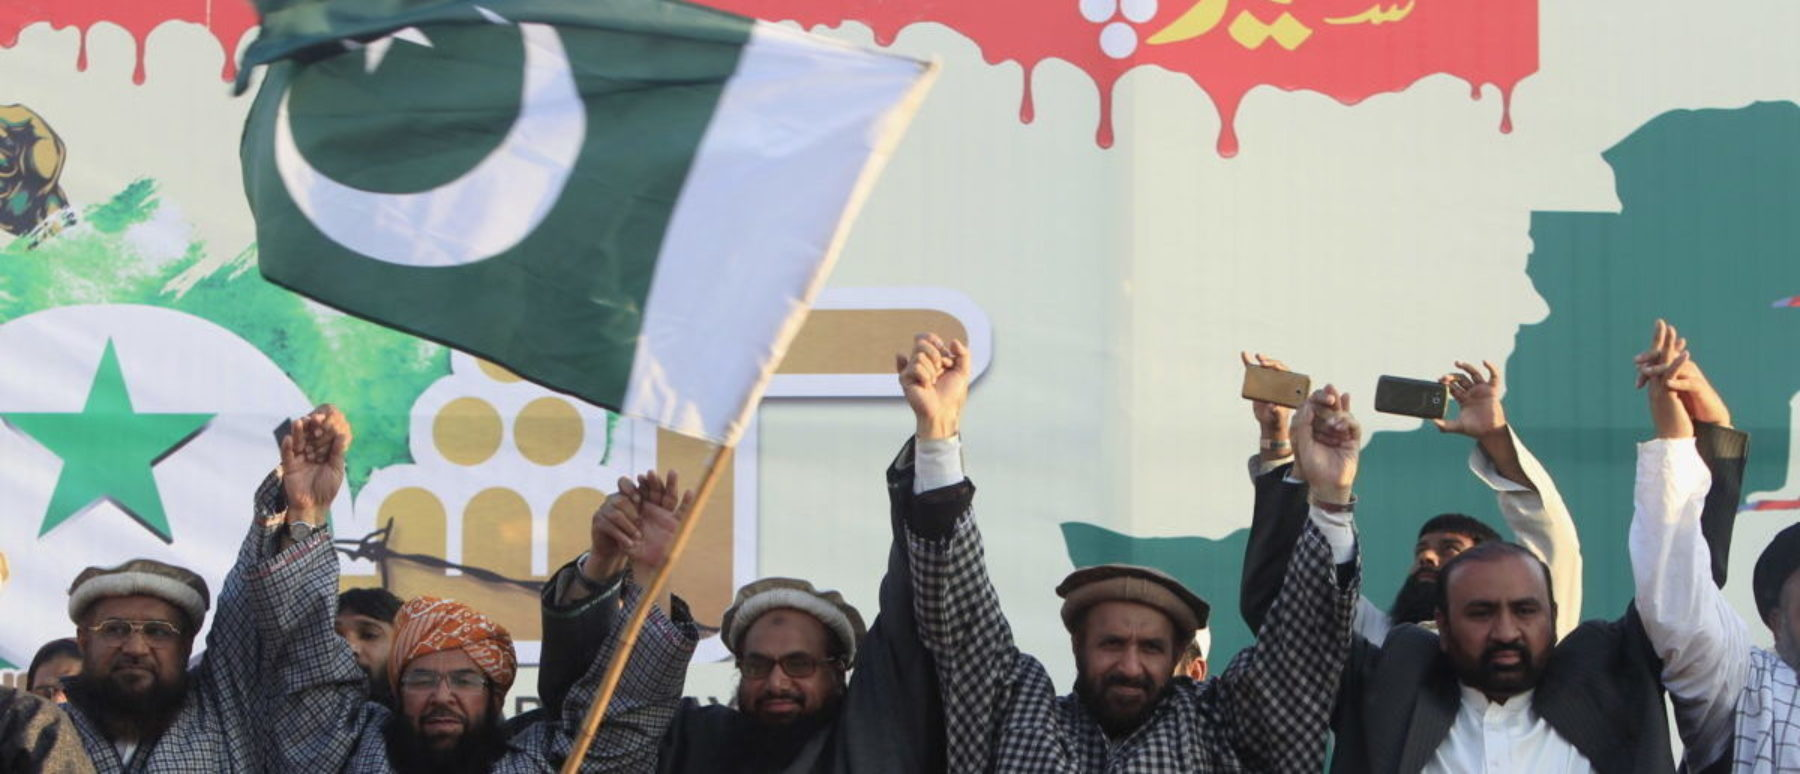 A boy waves a Pakistani flag in front of Hafiz Muhammad Saeed (C) chief of the Jamat-ud-Dawa organisation, as Saeed joins hands with leaders of different political parties during a rally to mark Kashmir Solidarity Day, in Islamabad, Pakistan, February 5, 2016. (Photo: REUTERS/Faisal Mahmood)